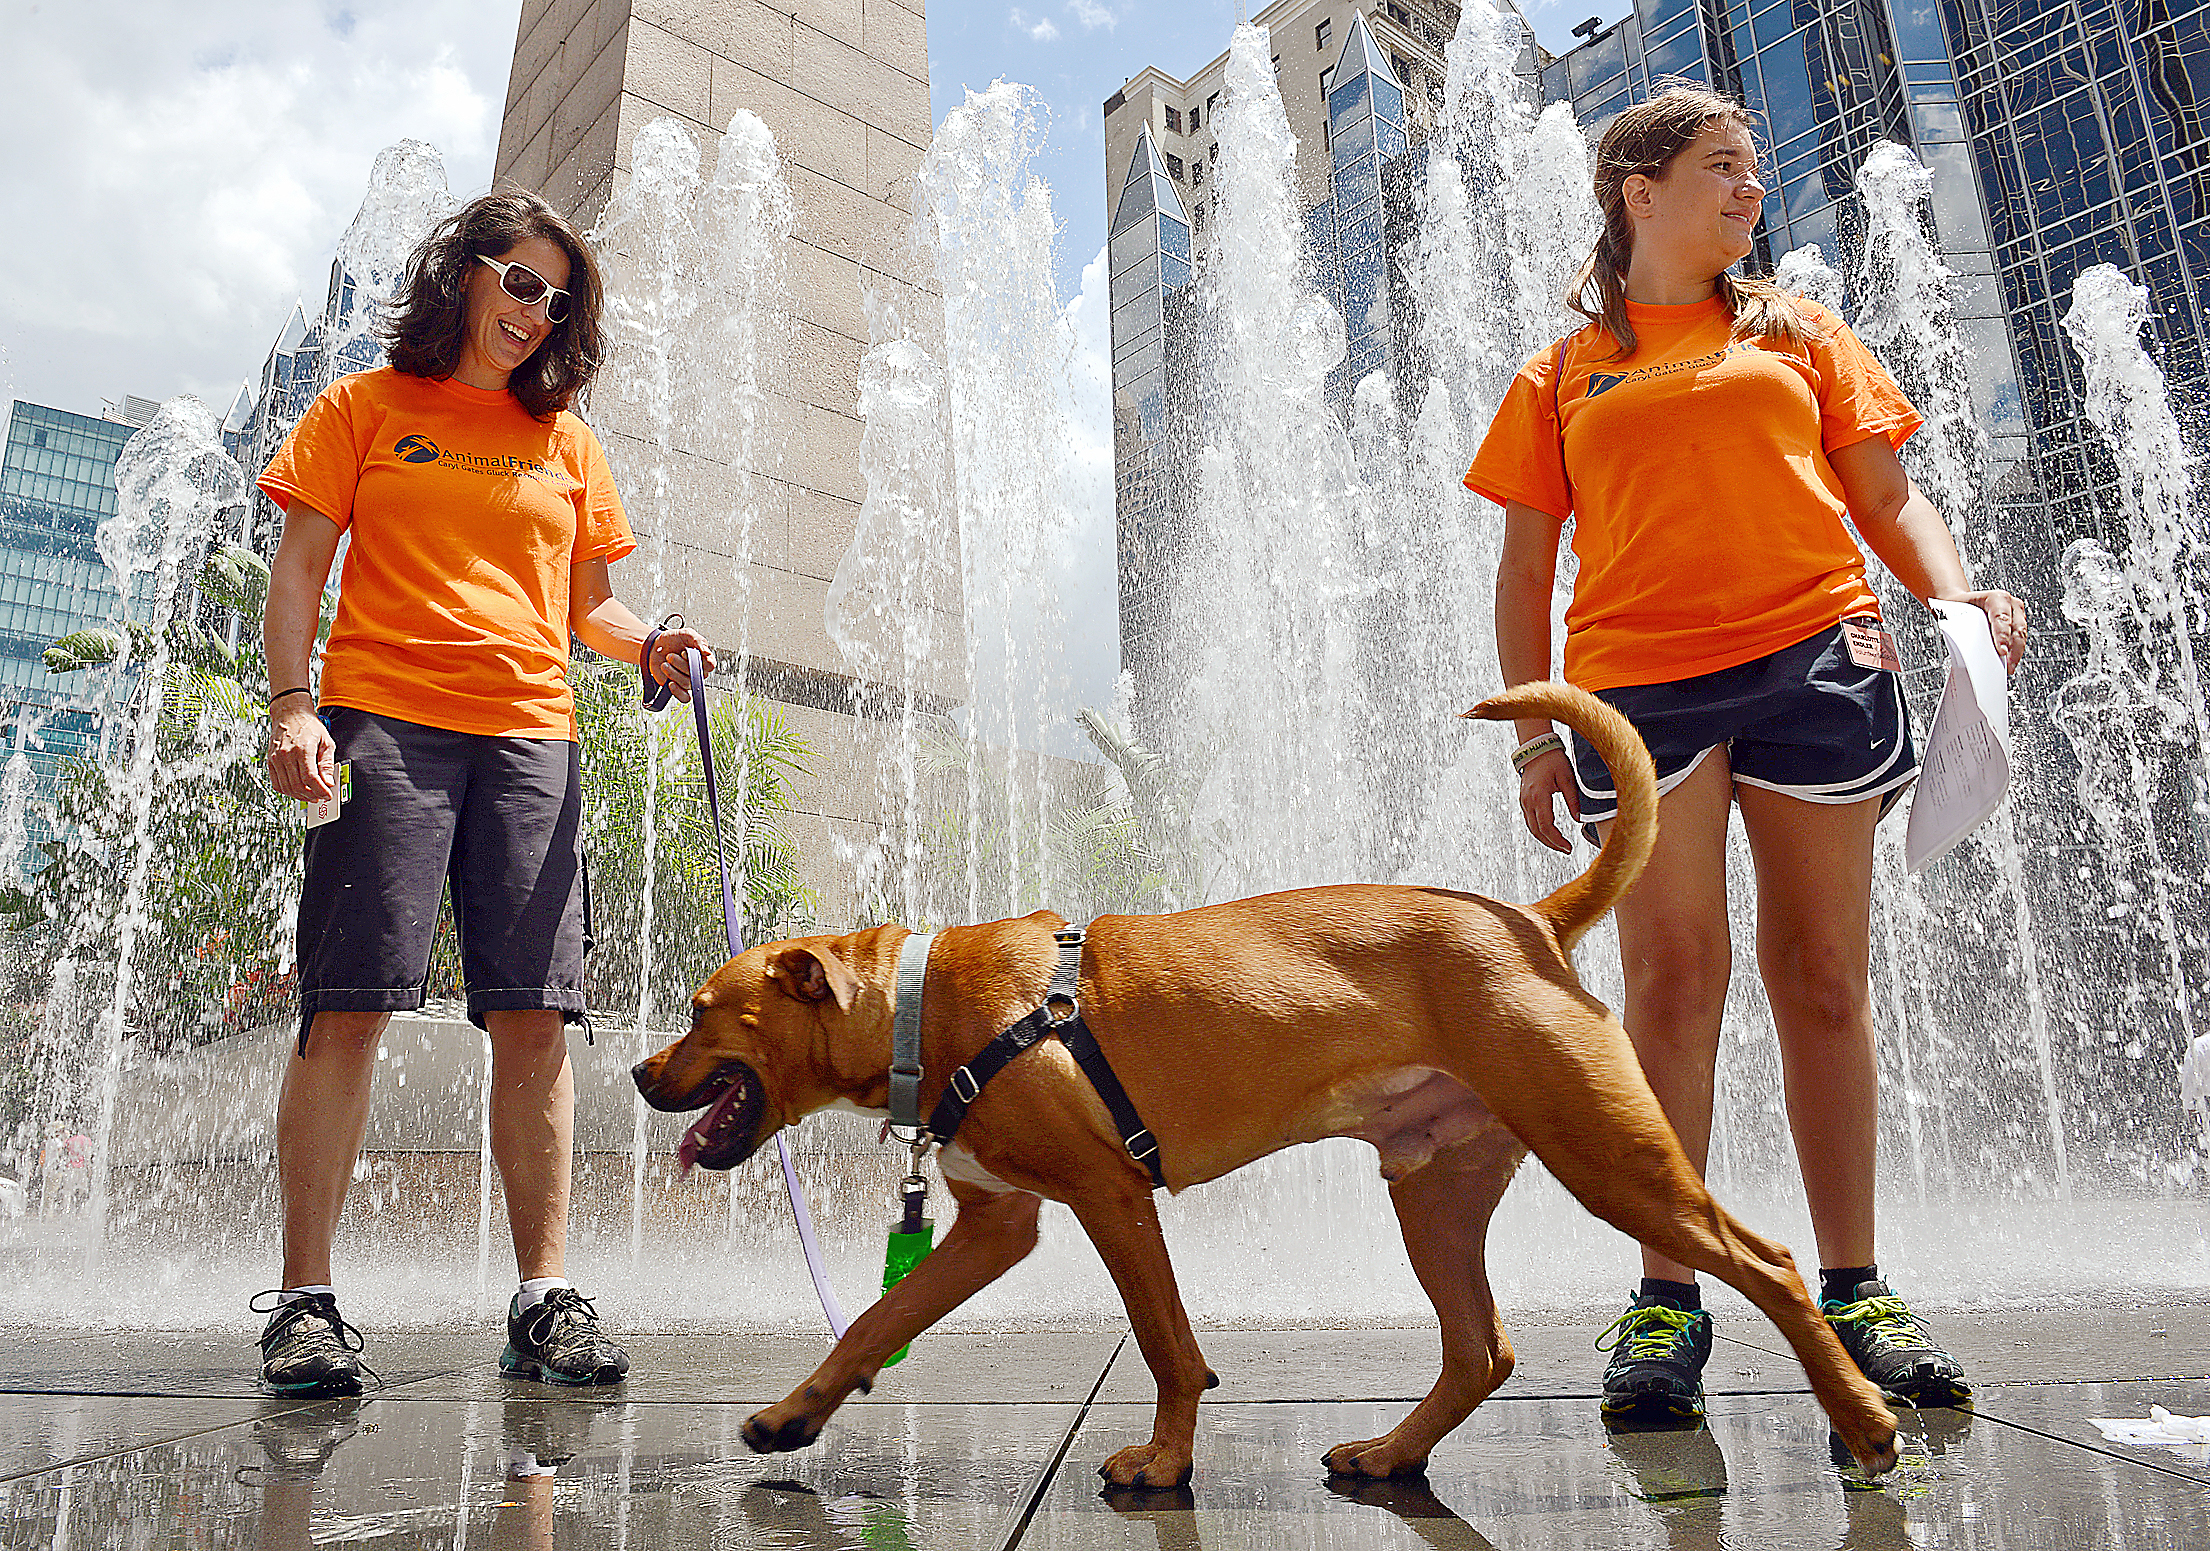 Holly Gumbeski, left, and Charlotte Ender, both of Animal Friends, along with Monceler, a two-year-old pit bull mix, enjoy the cooling spray of the dancing fountain at PPG Place Wednesday.